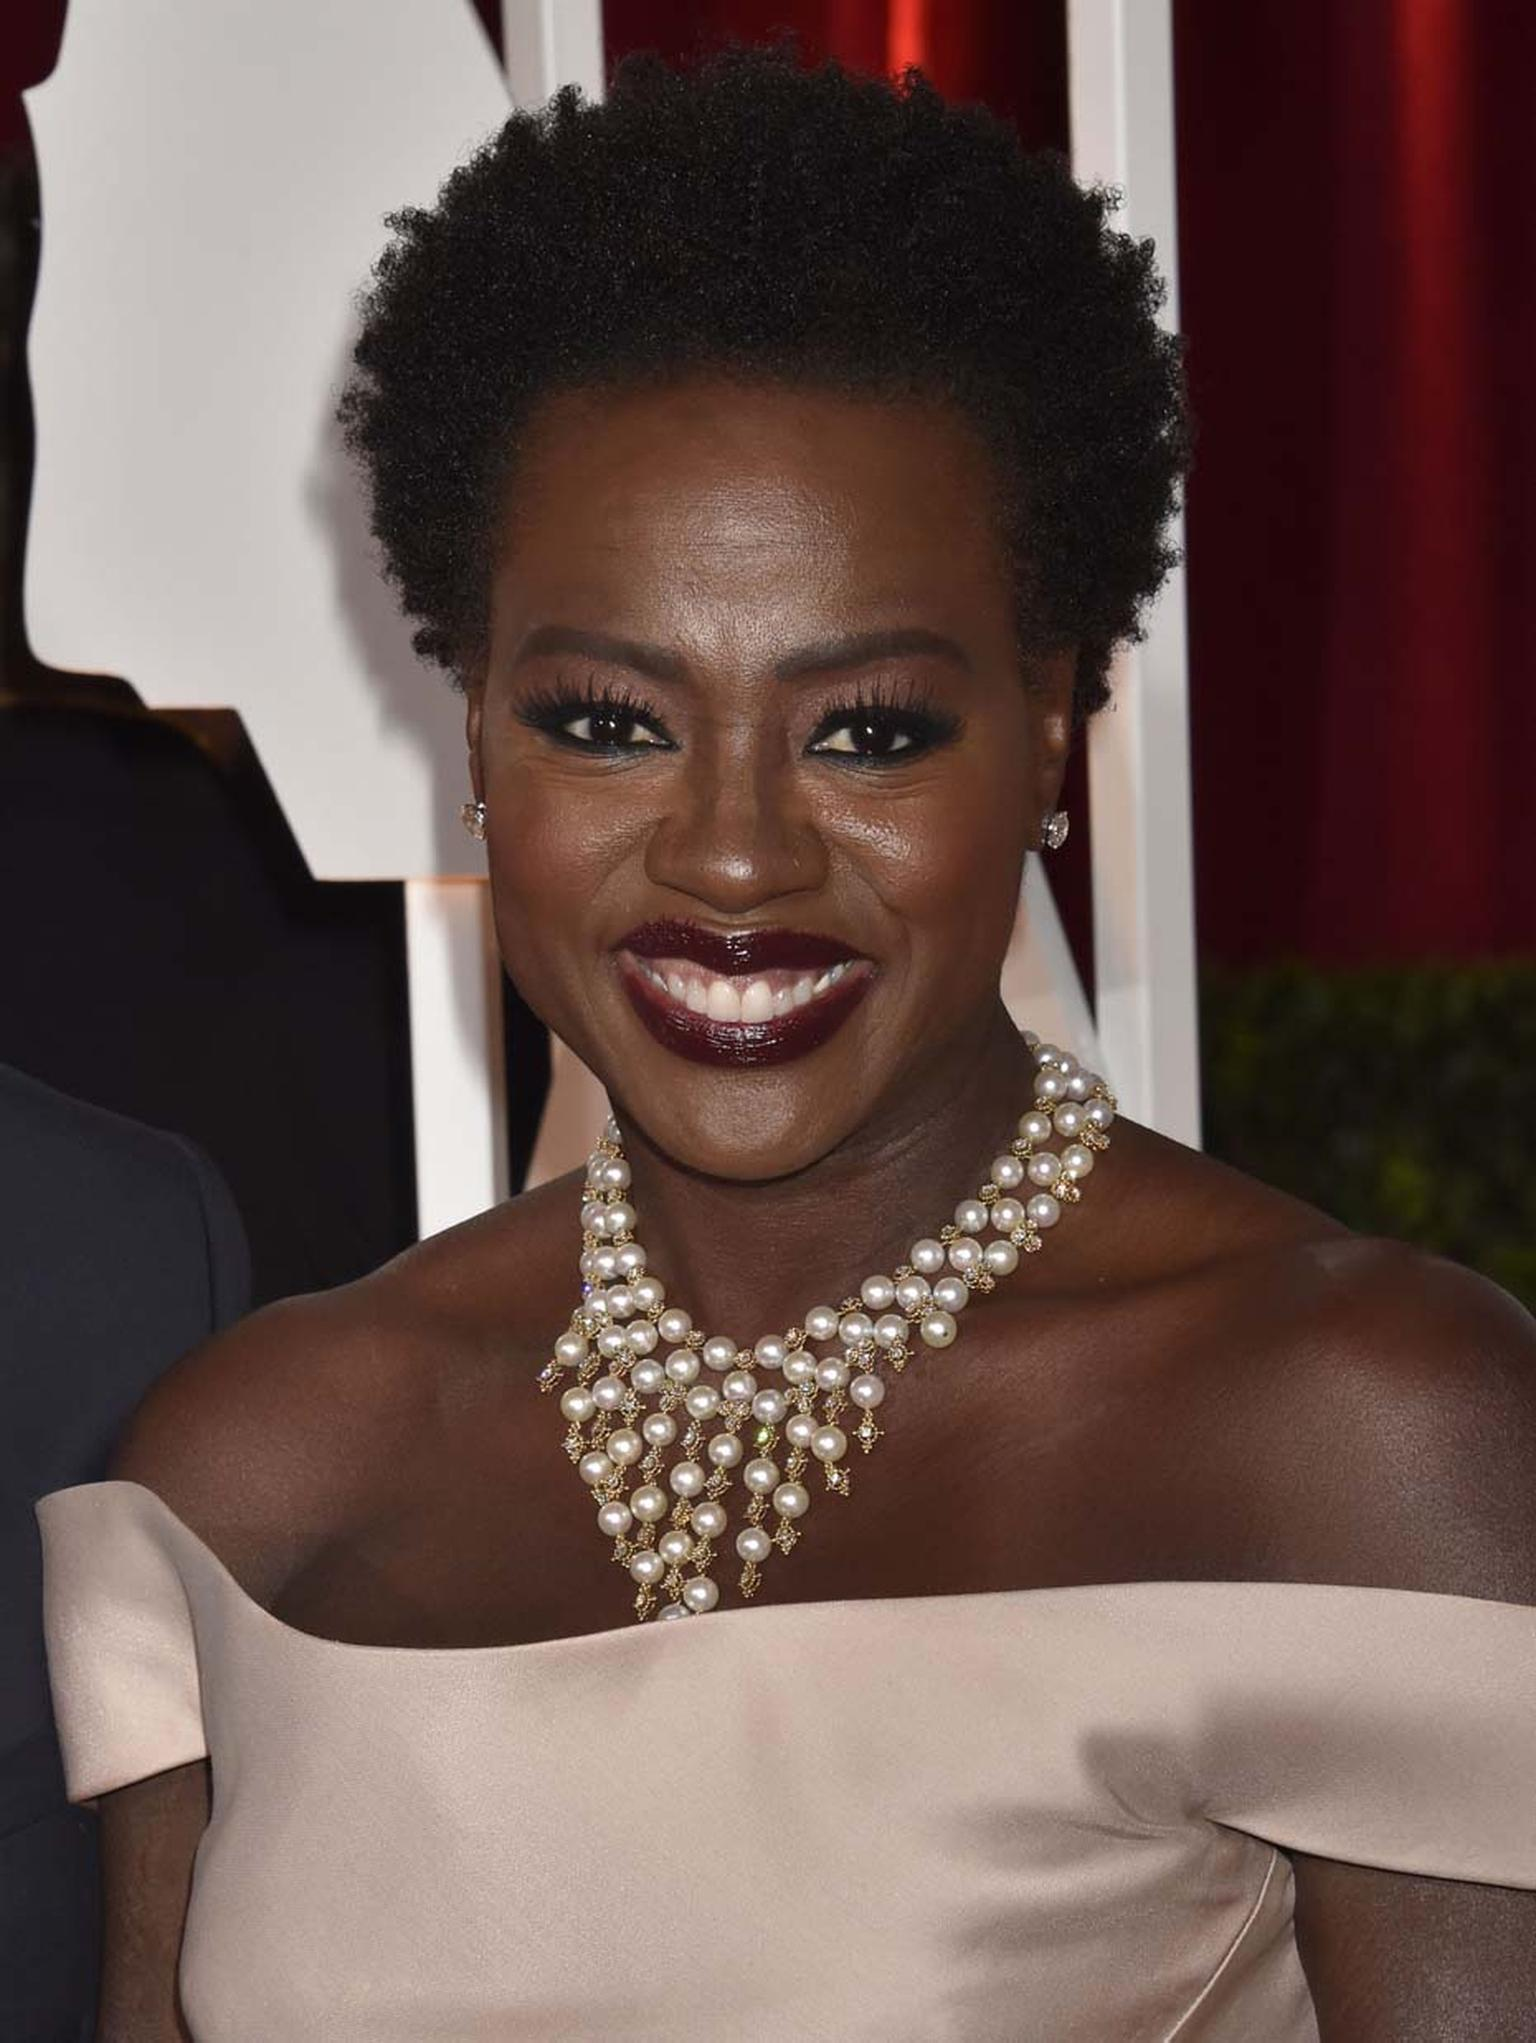 Actress Viola Davis opted for this stunning pearl statement necklace on the Oscars red carpet. The Van Cleef & Arpels estate piece was a beautifully crafted tangle of gold, diamonds and pearls.